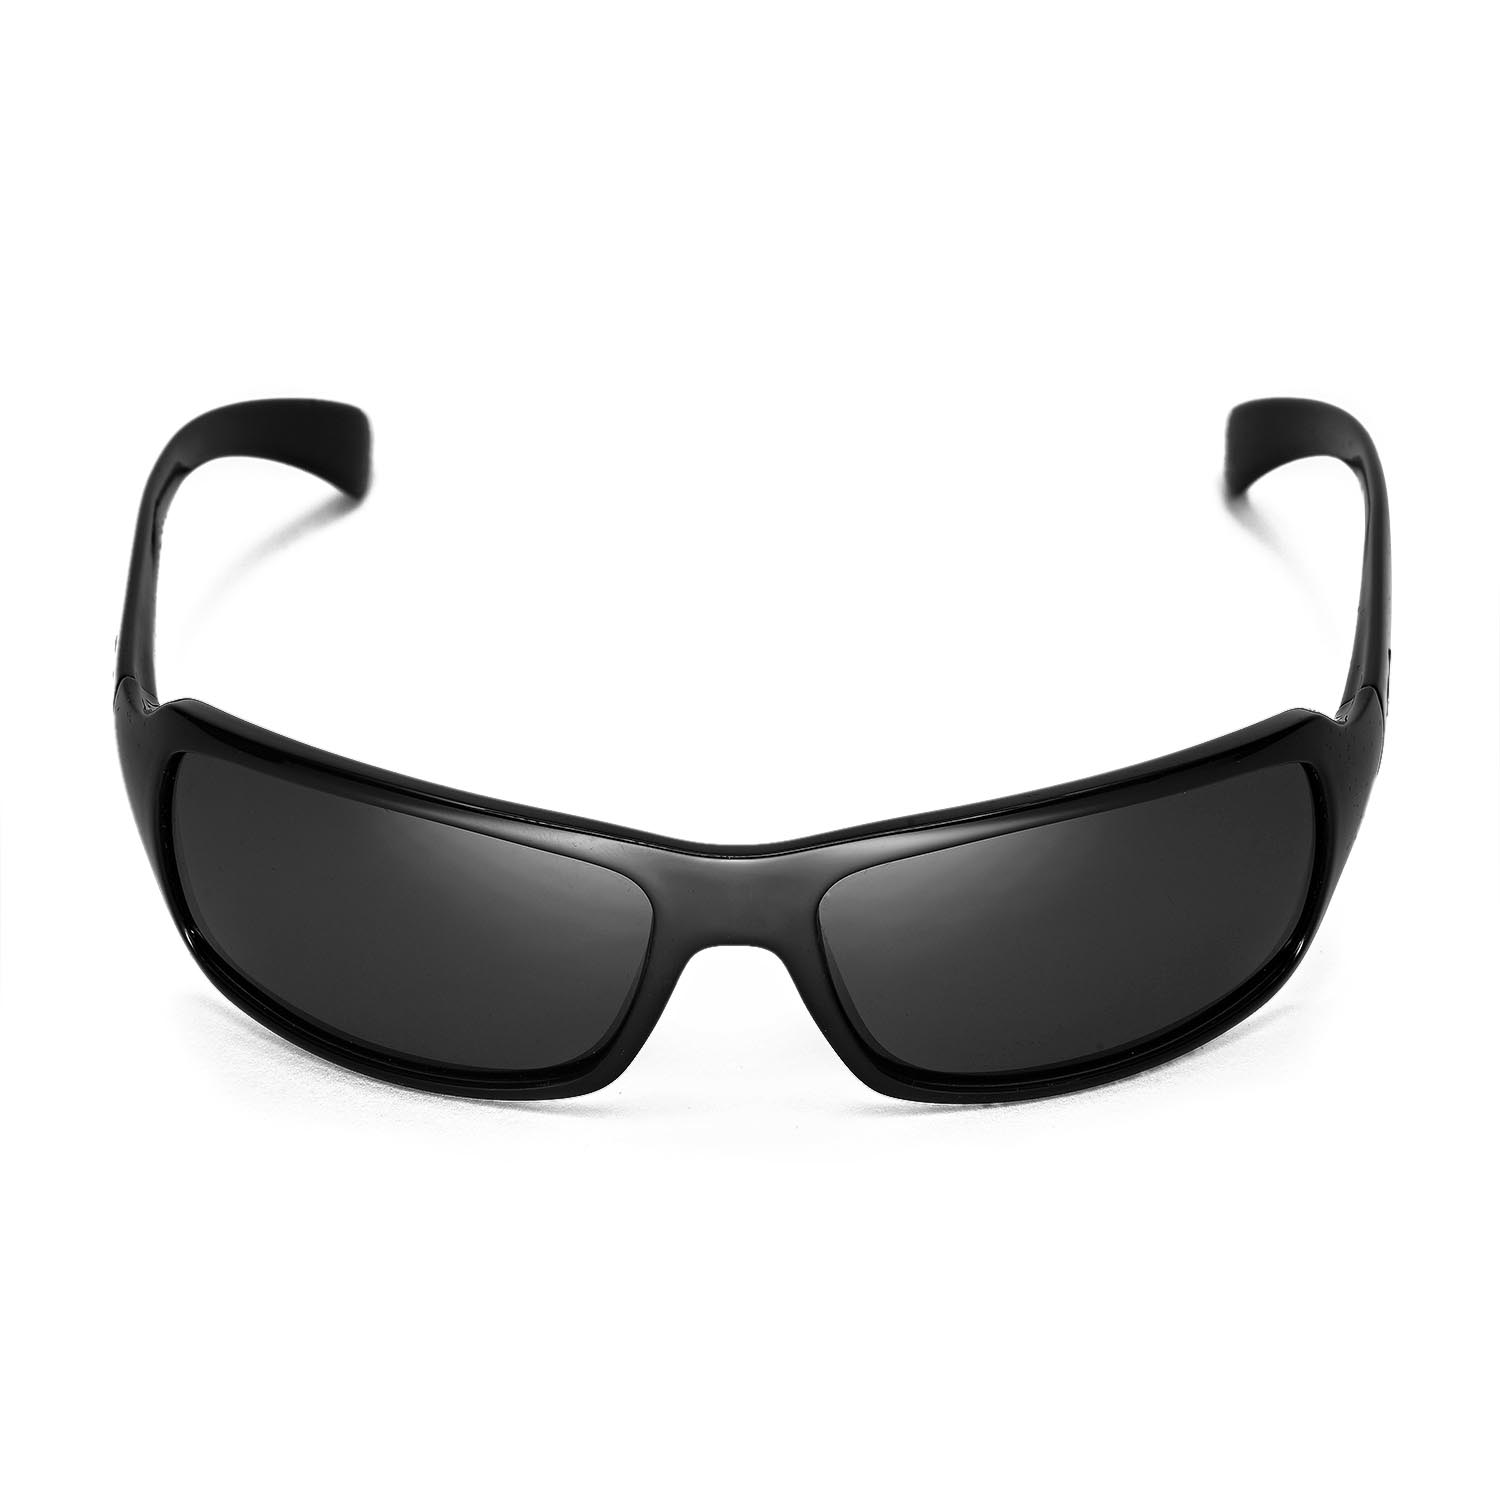 a8bca5974de Details about New Walleva Polarized Black Lenses For Ray-Ban RB4075 61mm